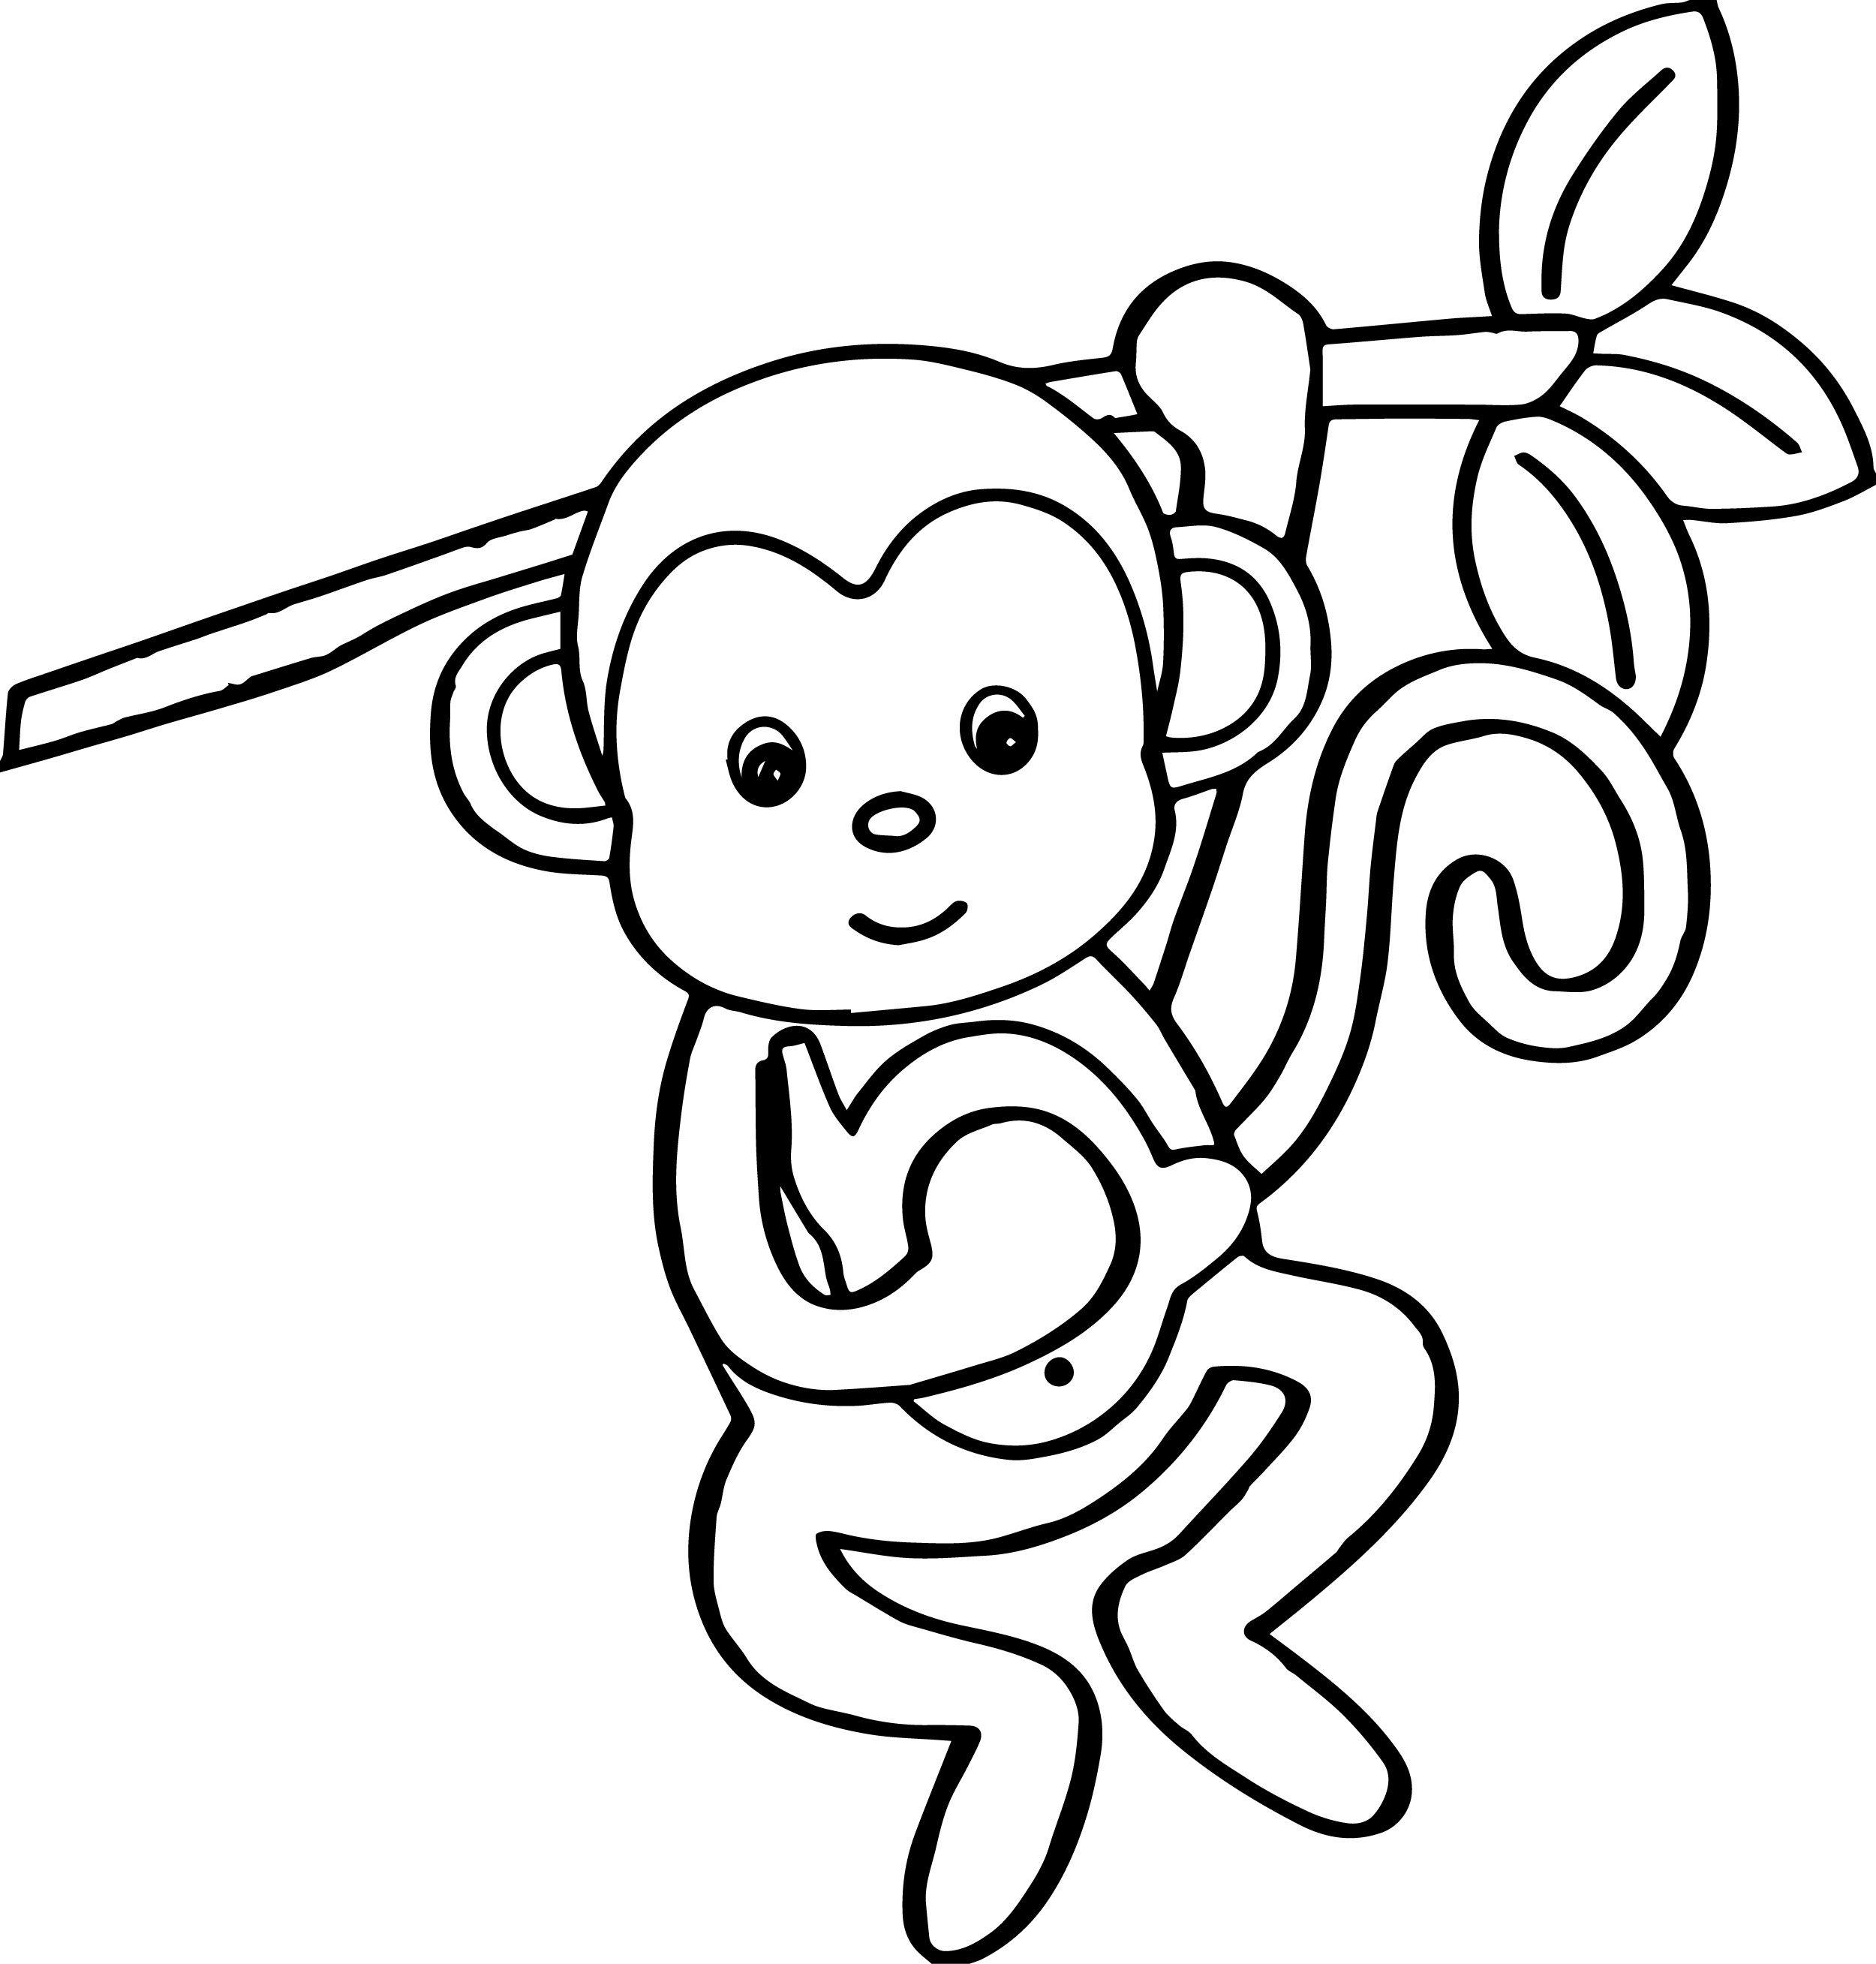 Monkey Coloring Page also 30f649ecdd1fd7403cd8883fc402c412 further  in addition 76 Free Cute Cartoon Monkey Clipart Illustration besides  further monkeysc4 additionally  likewise f412b7953b6099ee7799108f52937012 in addition  moreover Imagens de macacos e gorilas para imprimir e colorir 11 besides 76 Free Cute Cartoon Monkey Clipart Illustration. on monky baby disney coloring pages